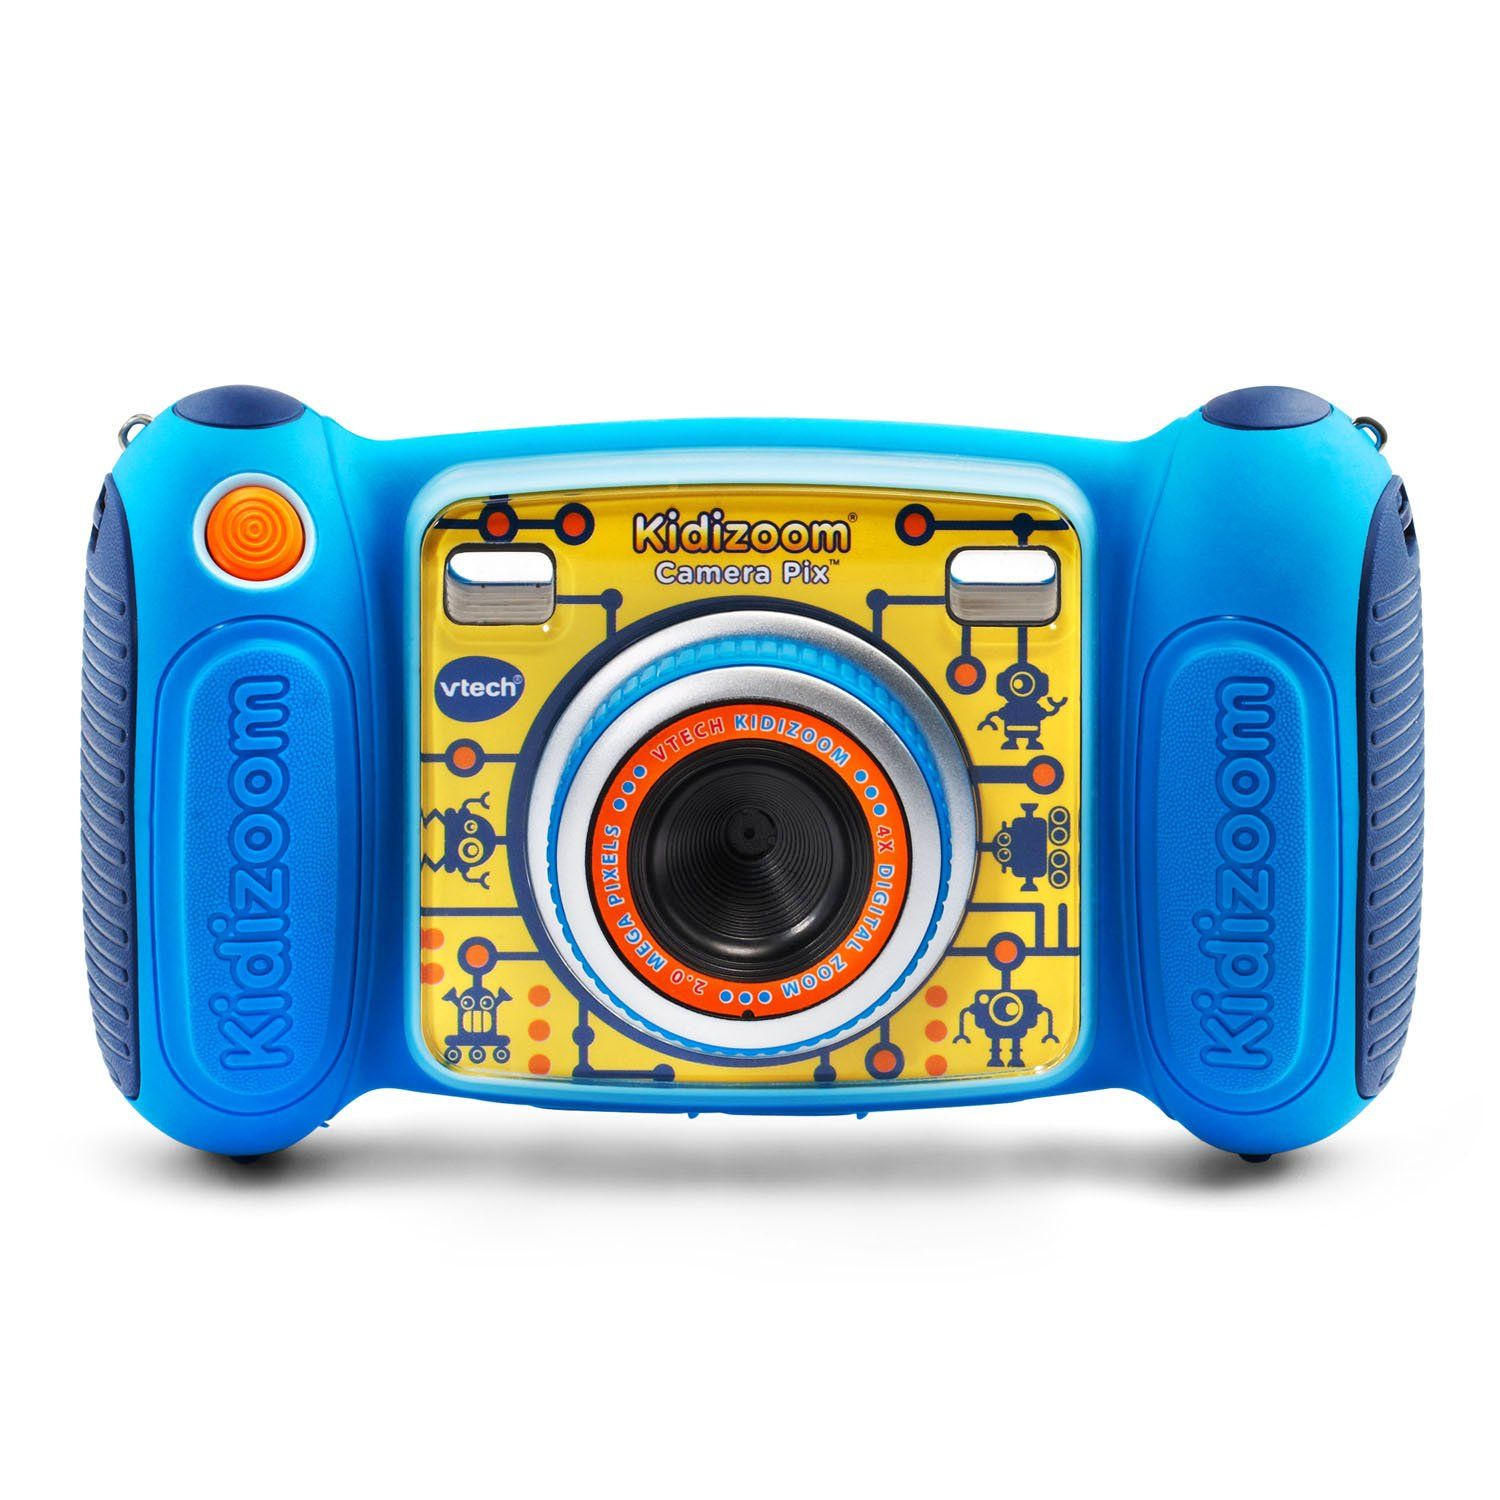 Vtech Kidizoom Duo 5 0 Deluxe Digital Selfie Camera With Mp3 Player 49 99 Kids Camera Best Camera Kidizoom Smartwatch